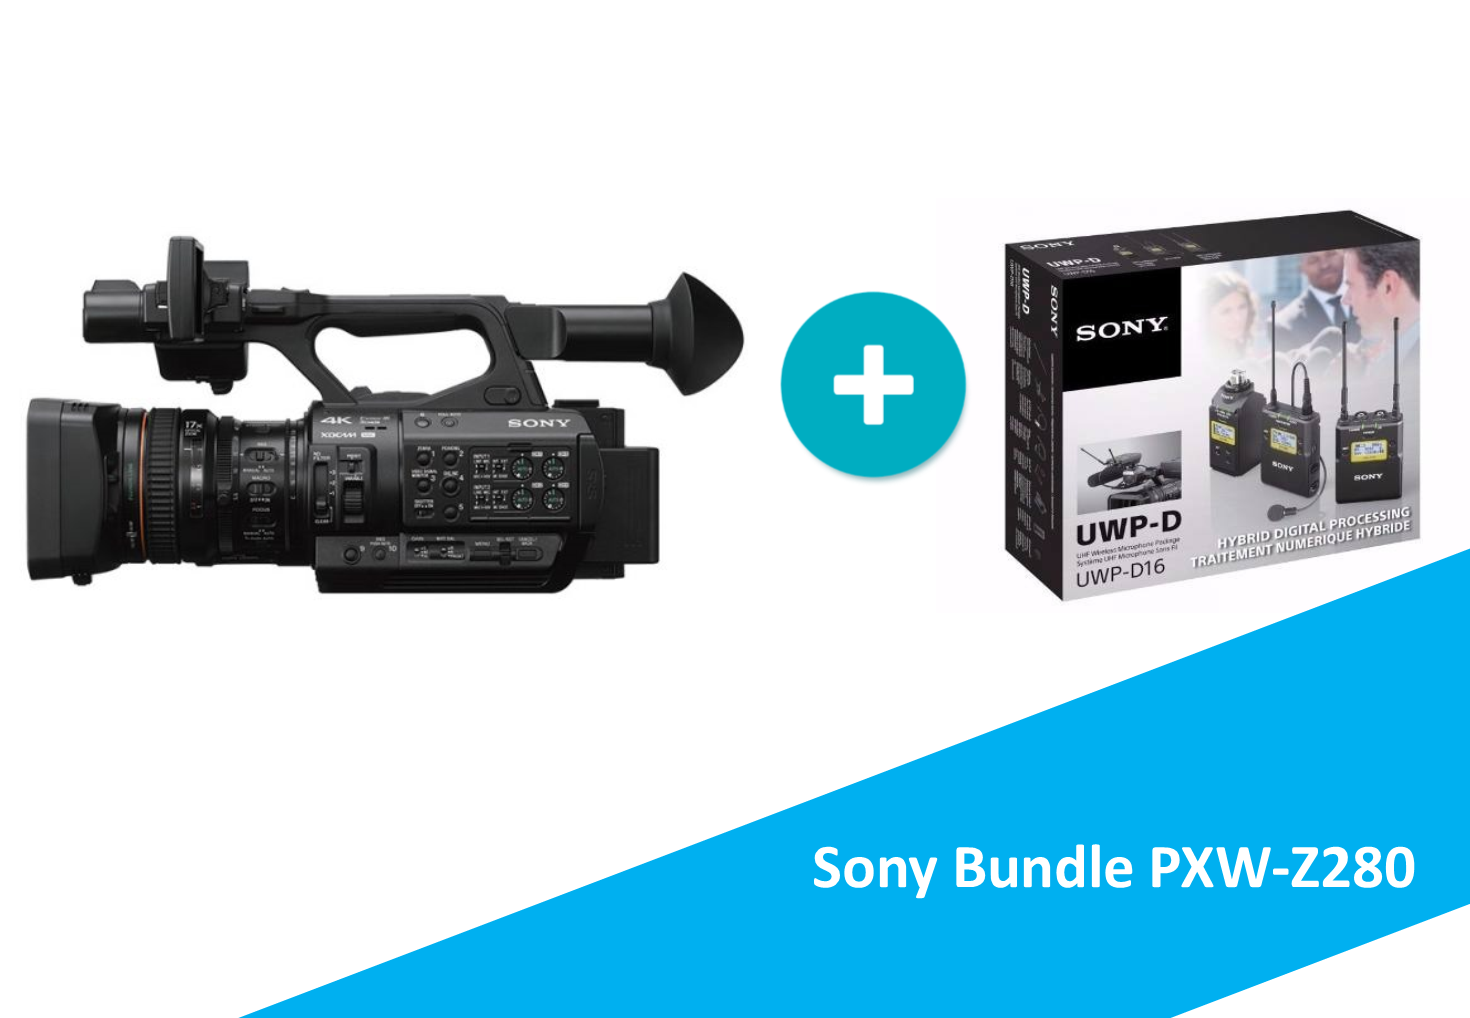 Sony Bundle PXW-Z280